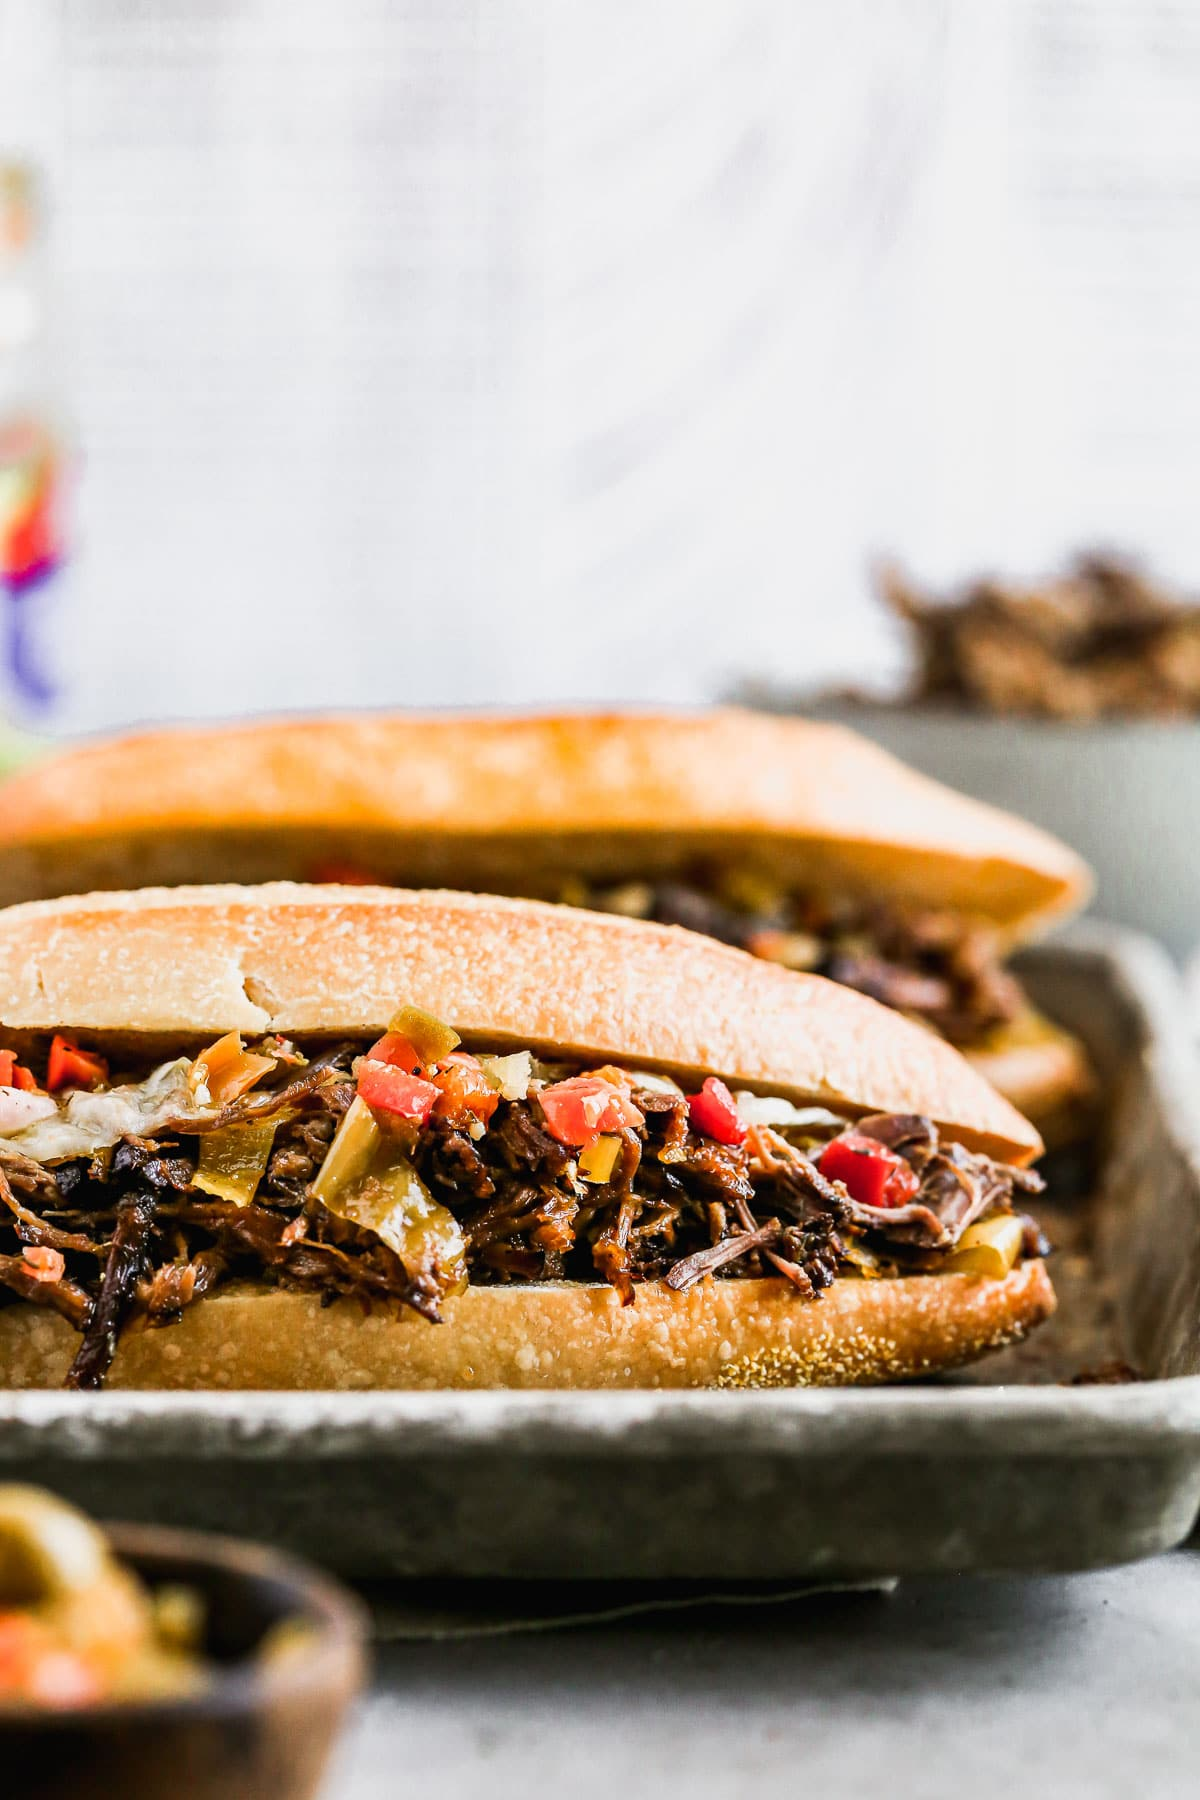 A sandwich of Italian beef with cheese